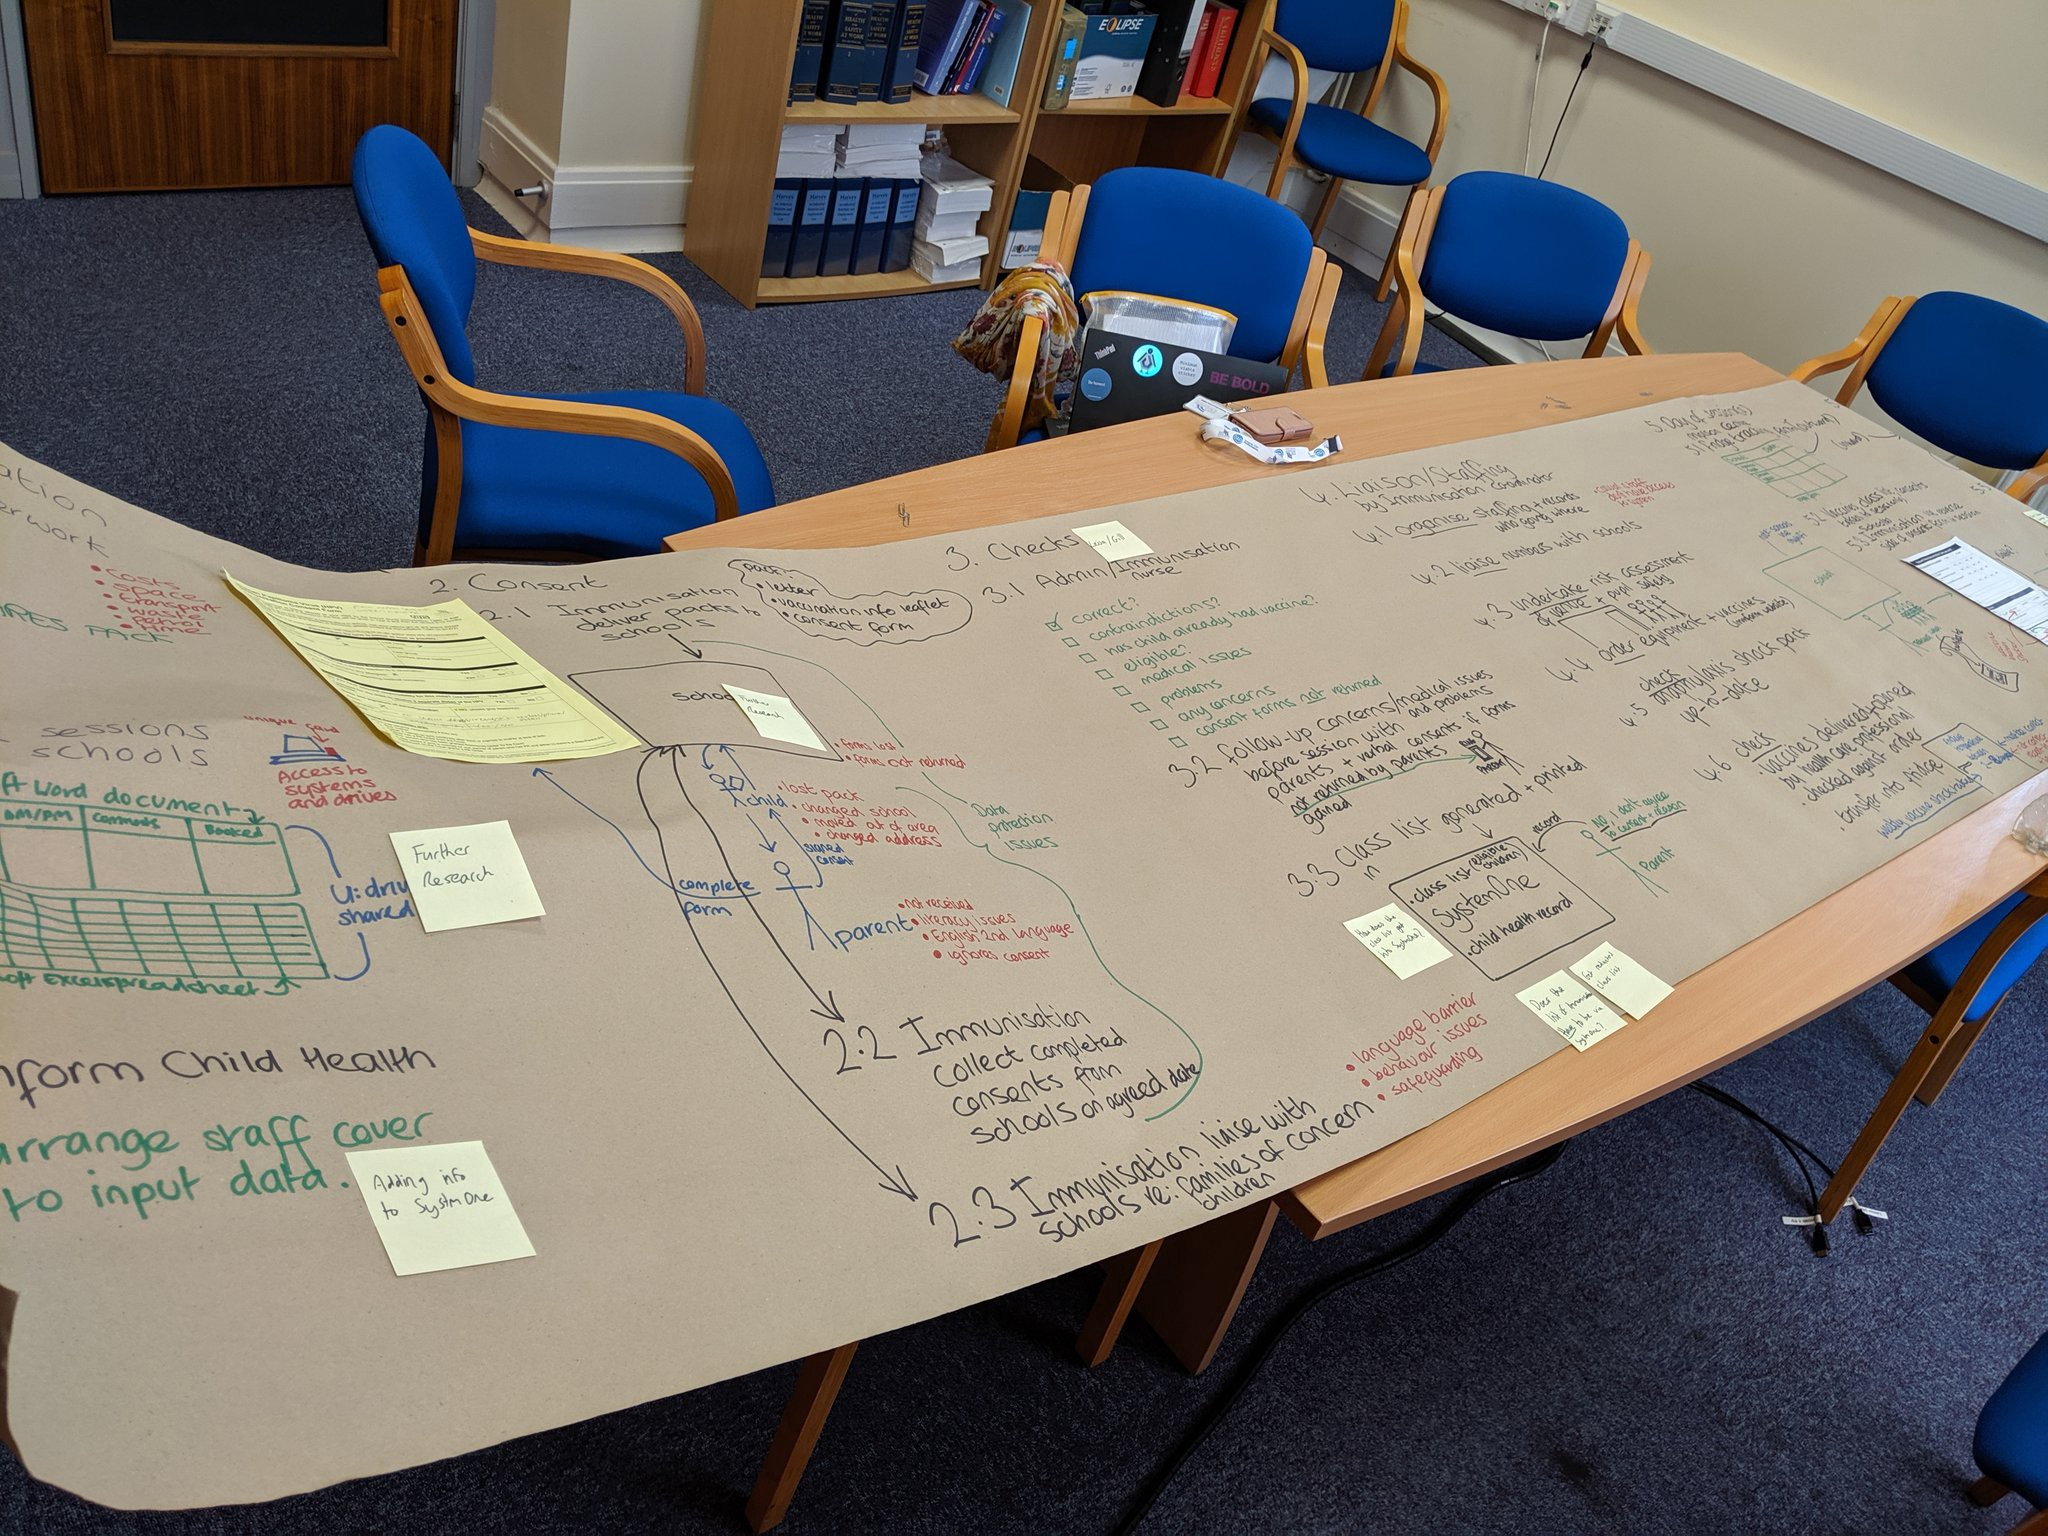 Process map produced after speaking to staff and observing their working practices. Created on a long sheet of brown paper